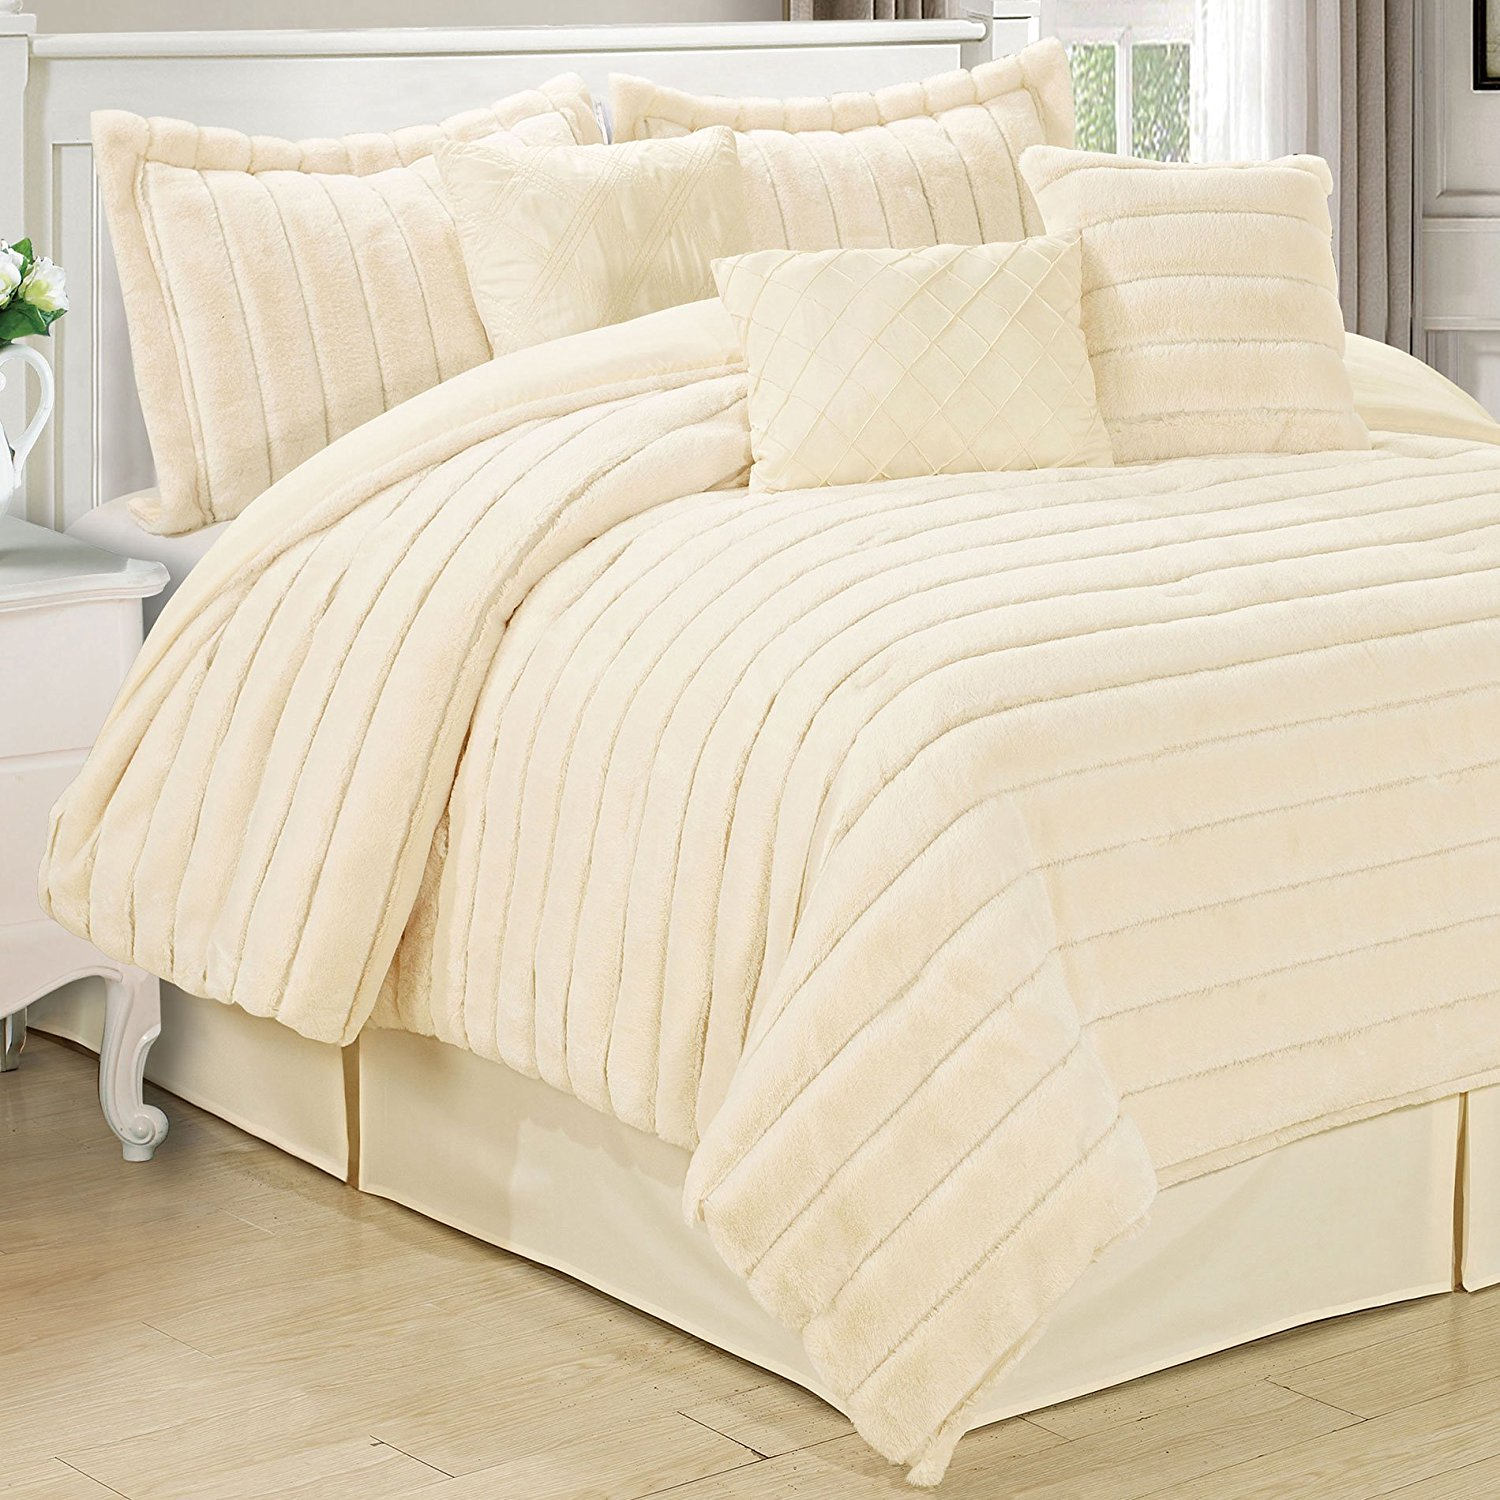 embroidery bnf first piece fur comfy set inc bedspread mink home ribbon precious relieving nights palisades comforter gh neutral carved faux